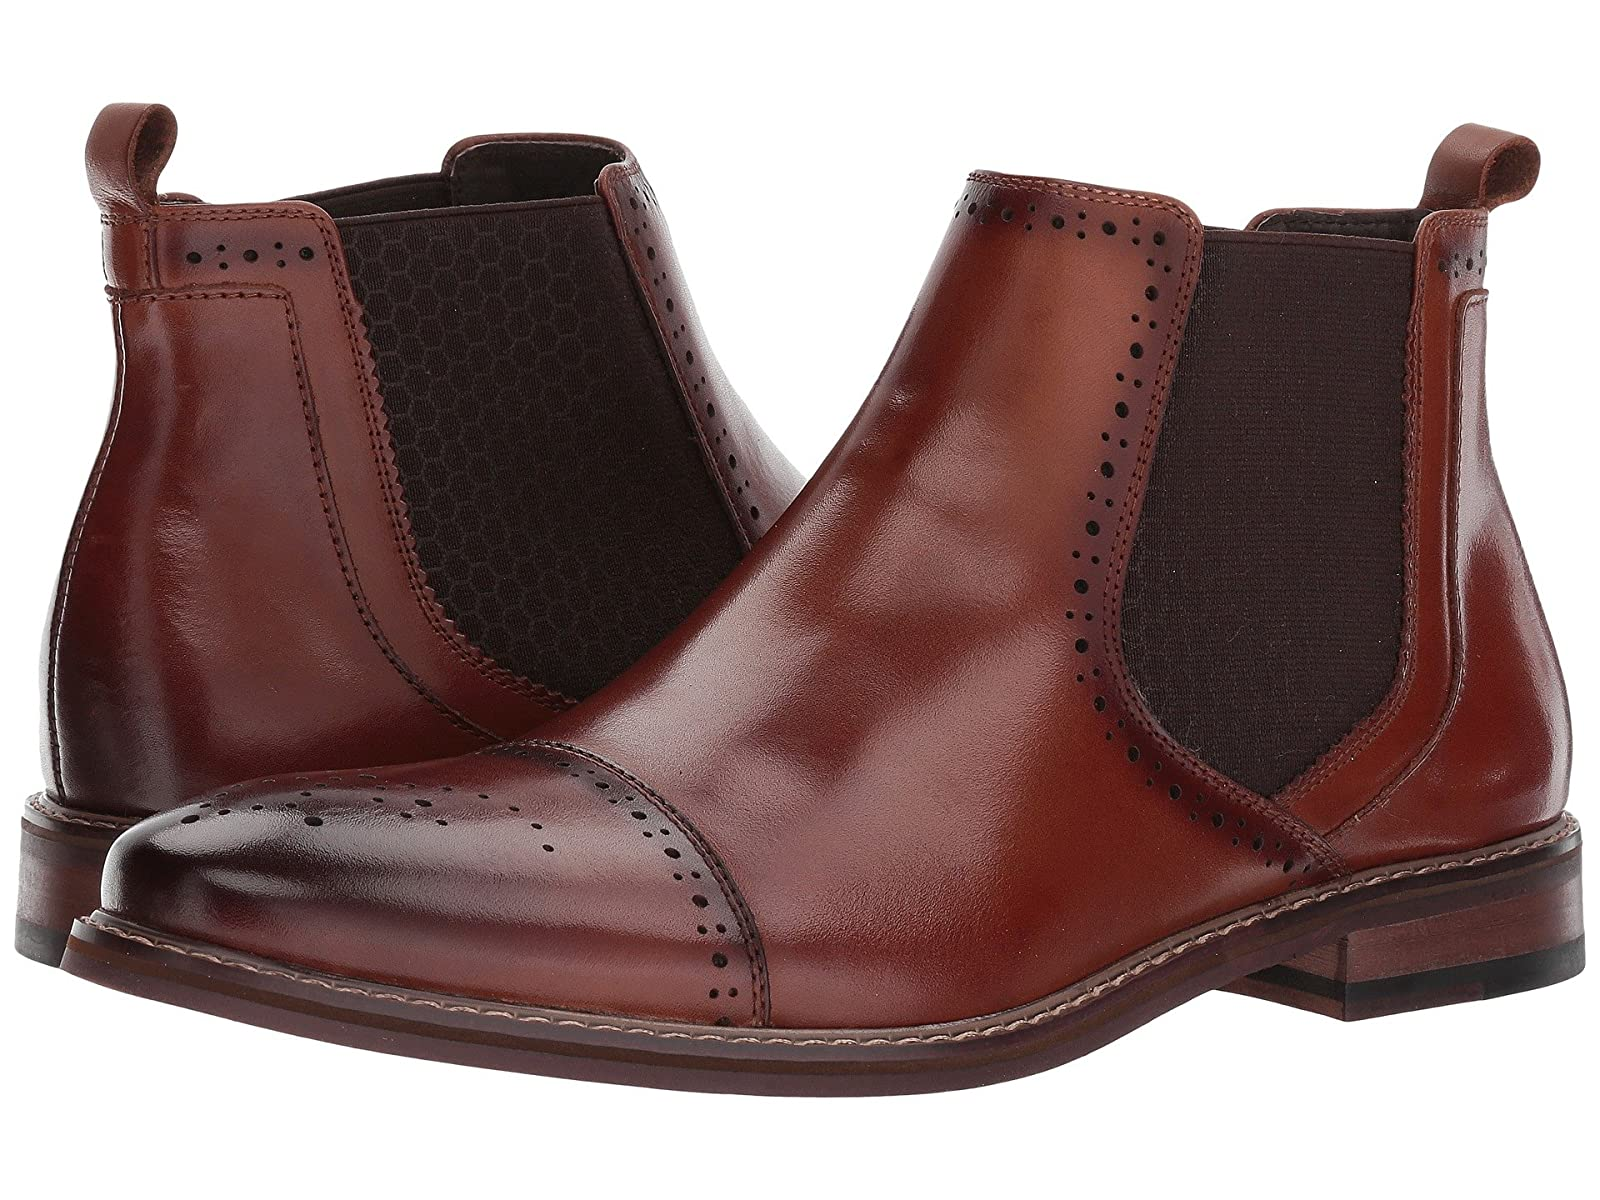 Stacy Adams AlomarEconomical and quality shoes